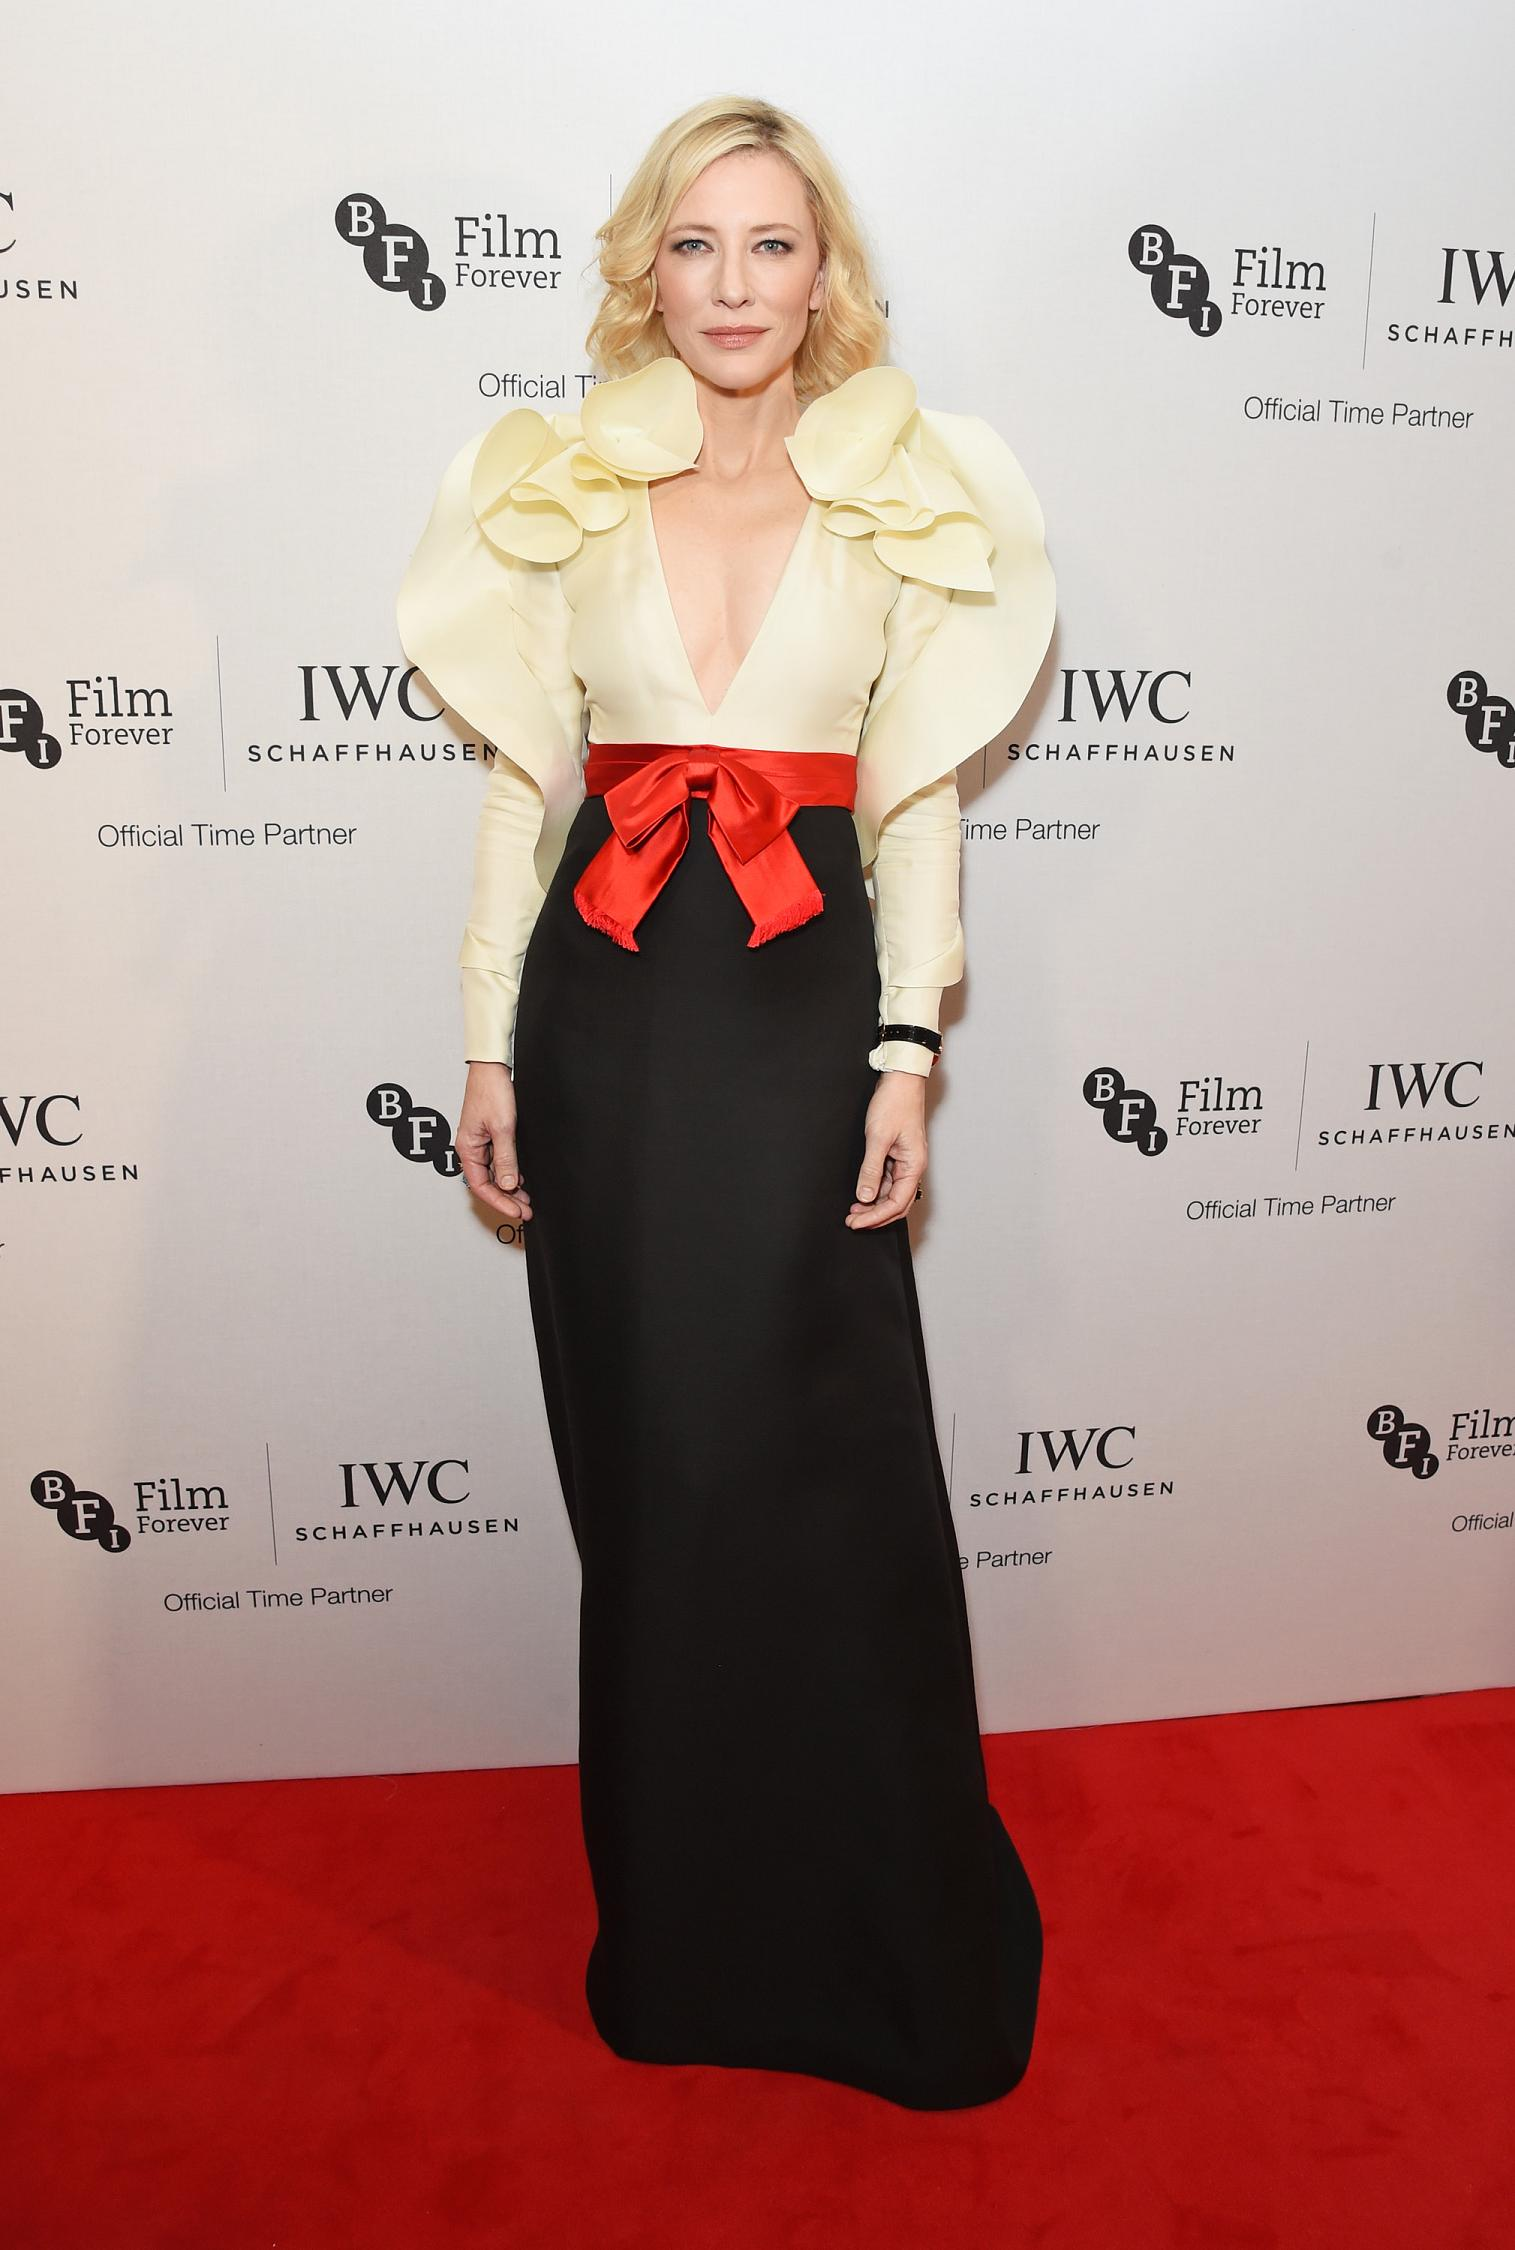 LONDON, ENGLAND - OCTOBER 04: Cate Blanchett attends the IWC Schaffhausen Dinner in Honour of the BFI at Rosewood London on October 4, 2016 in London, England. (PPR/IWC/Getty Images/Dave Benett)